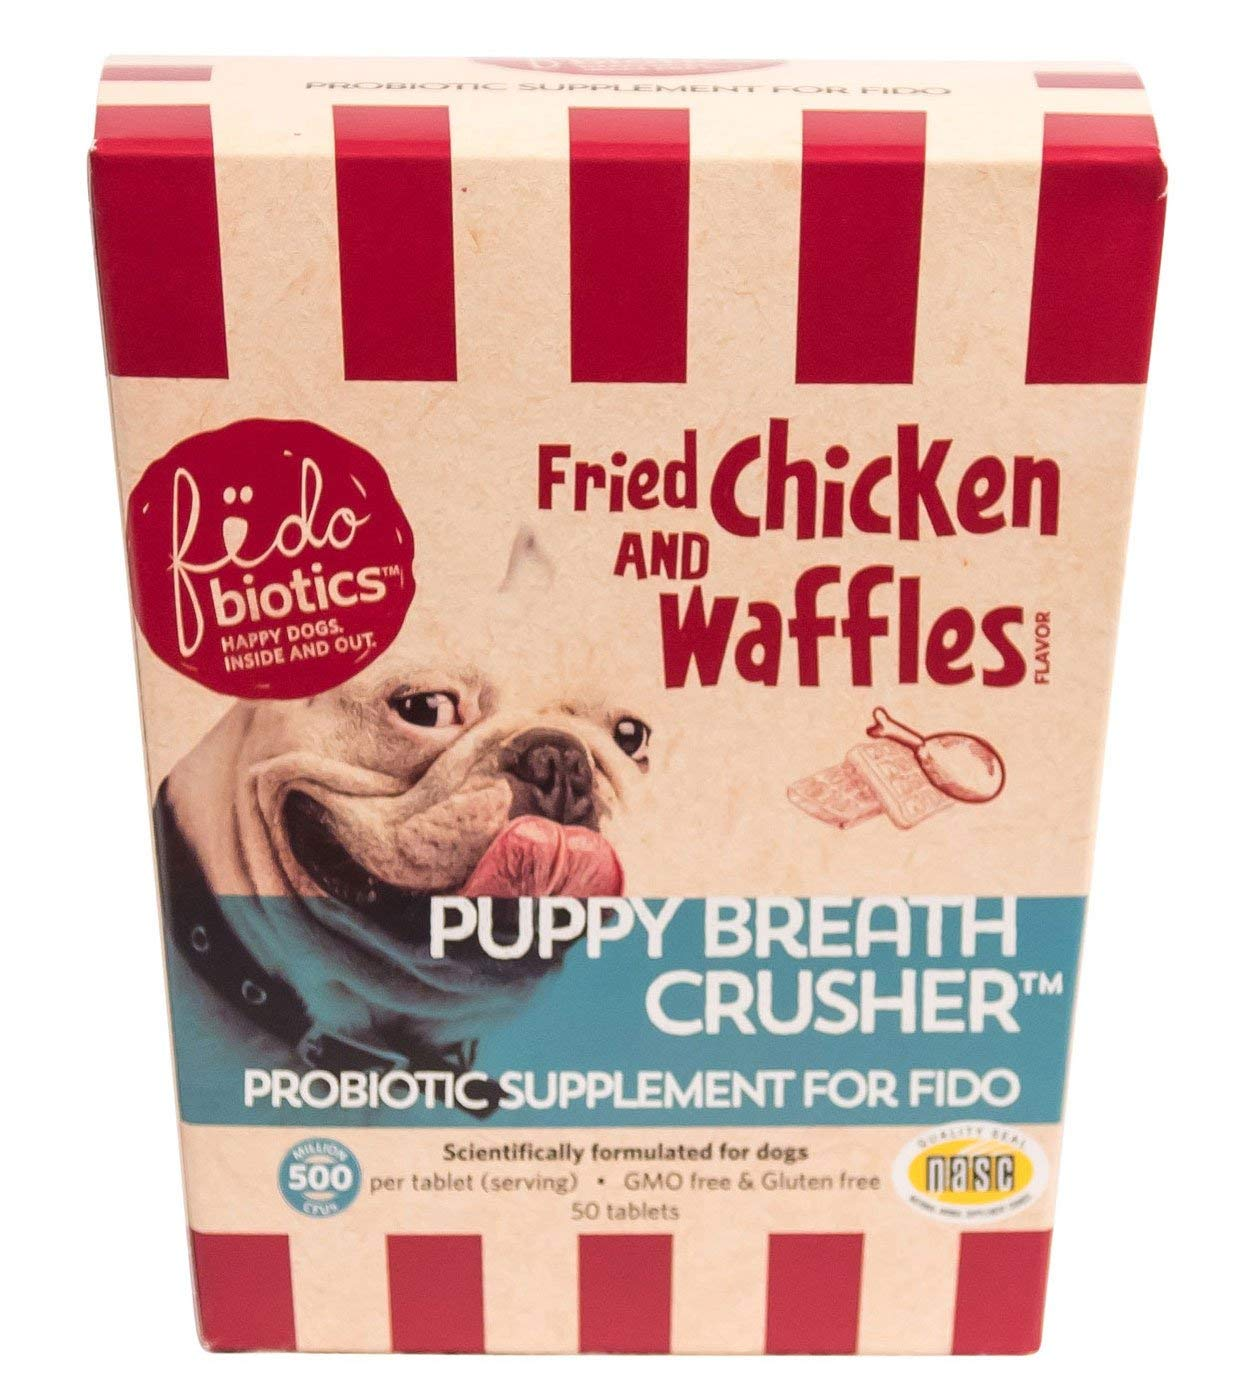 Puppy Breath Crusher By Fidobiotics - Best Dog Breath Freshener - Natural Dog Breath Treat - Helps With Bad Dog Breath